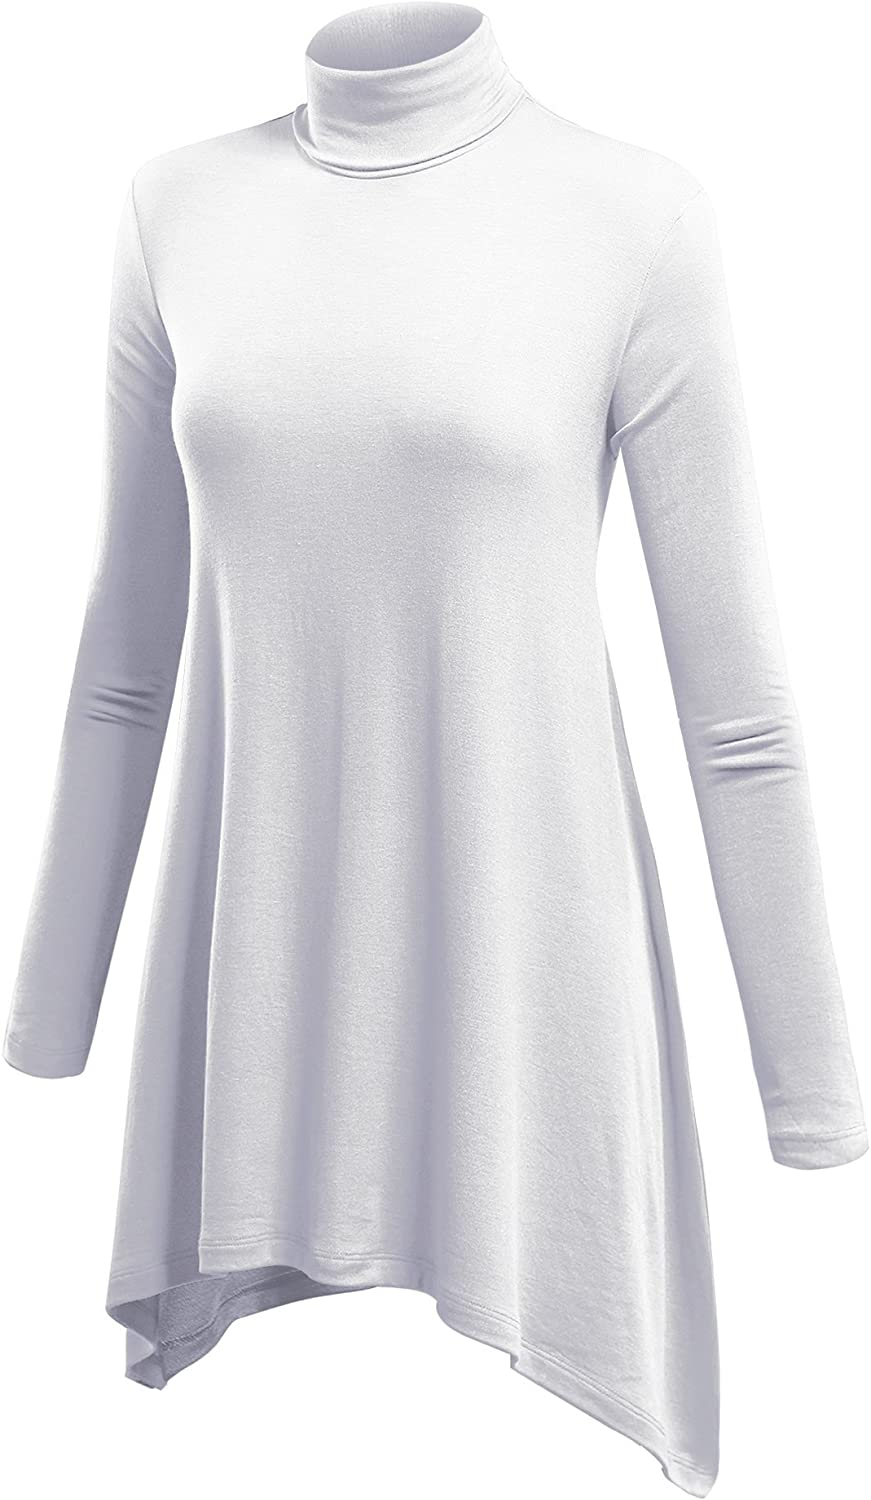 Lock and Love Women's Long Sleeve Turtleneck Asymmetric Tuni Top - Made in USA